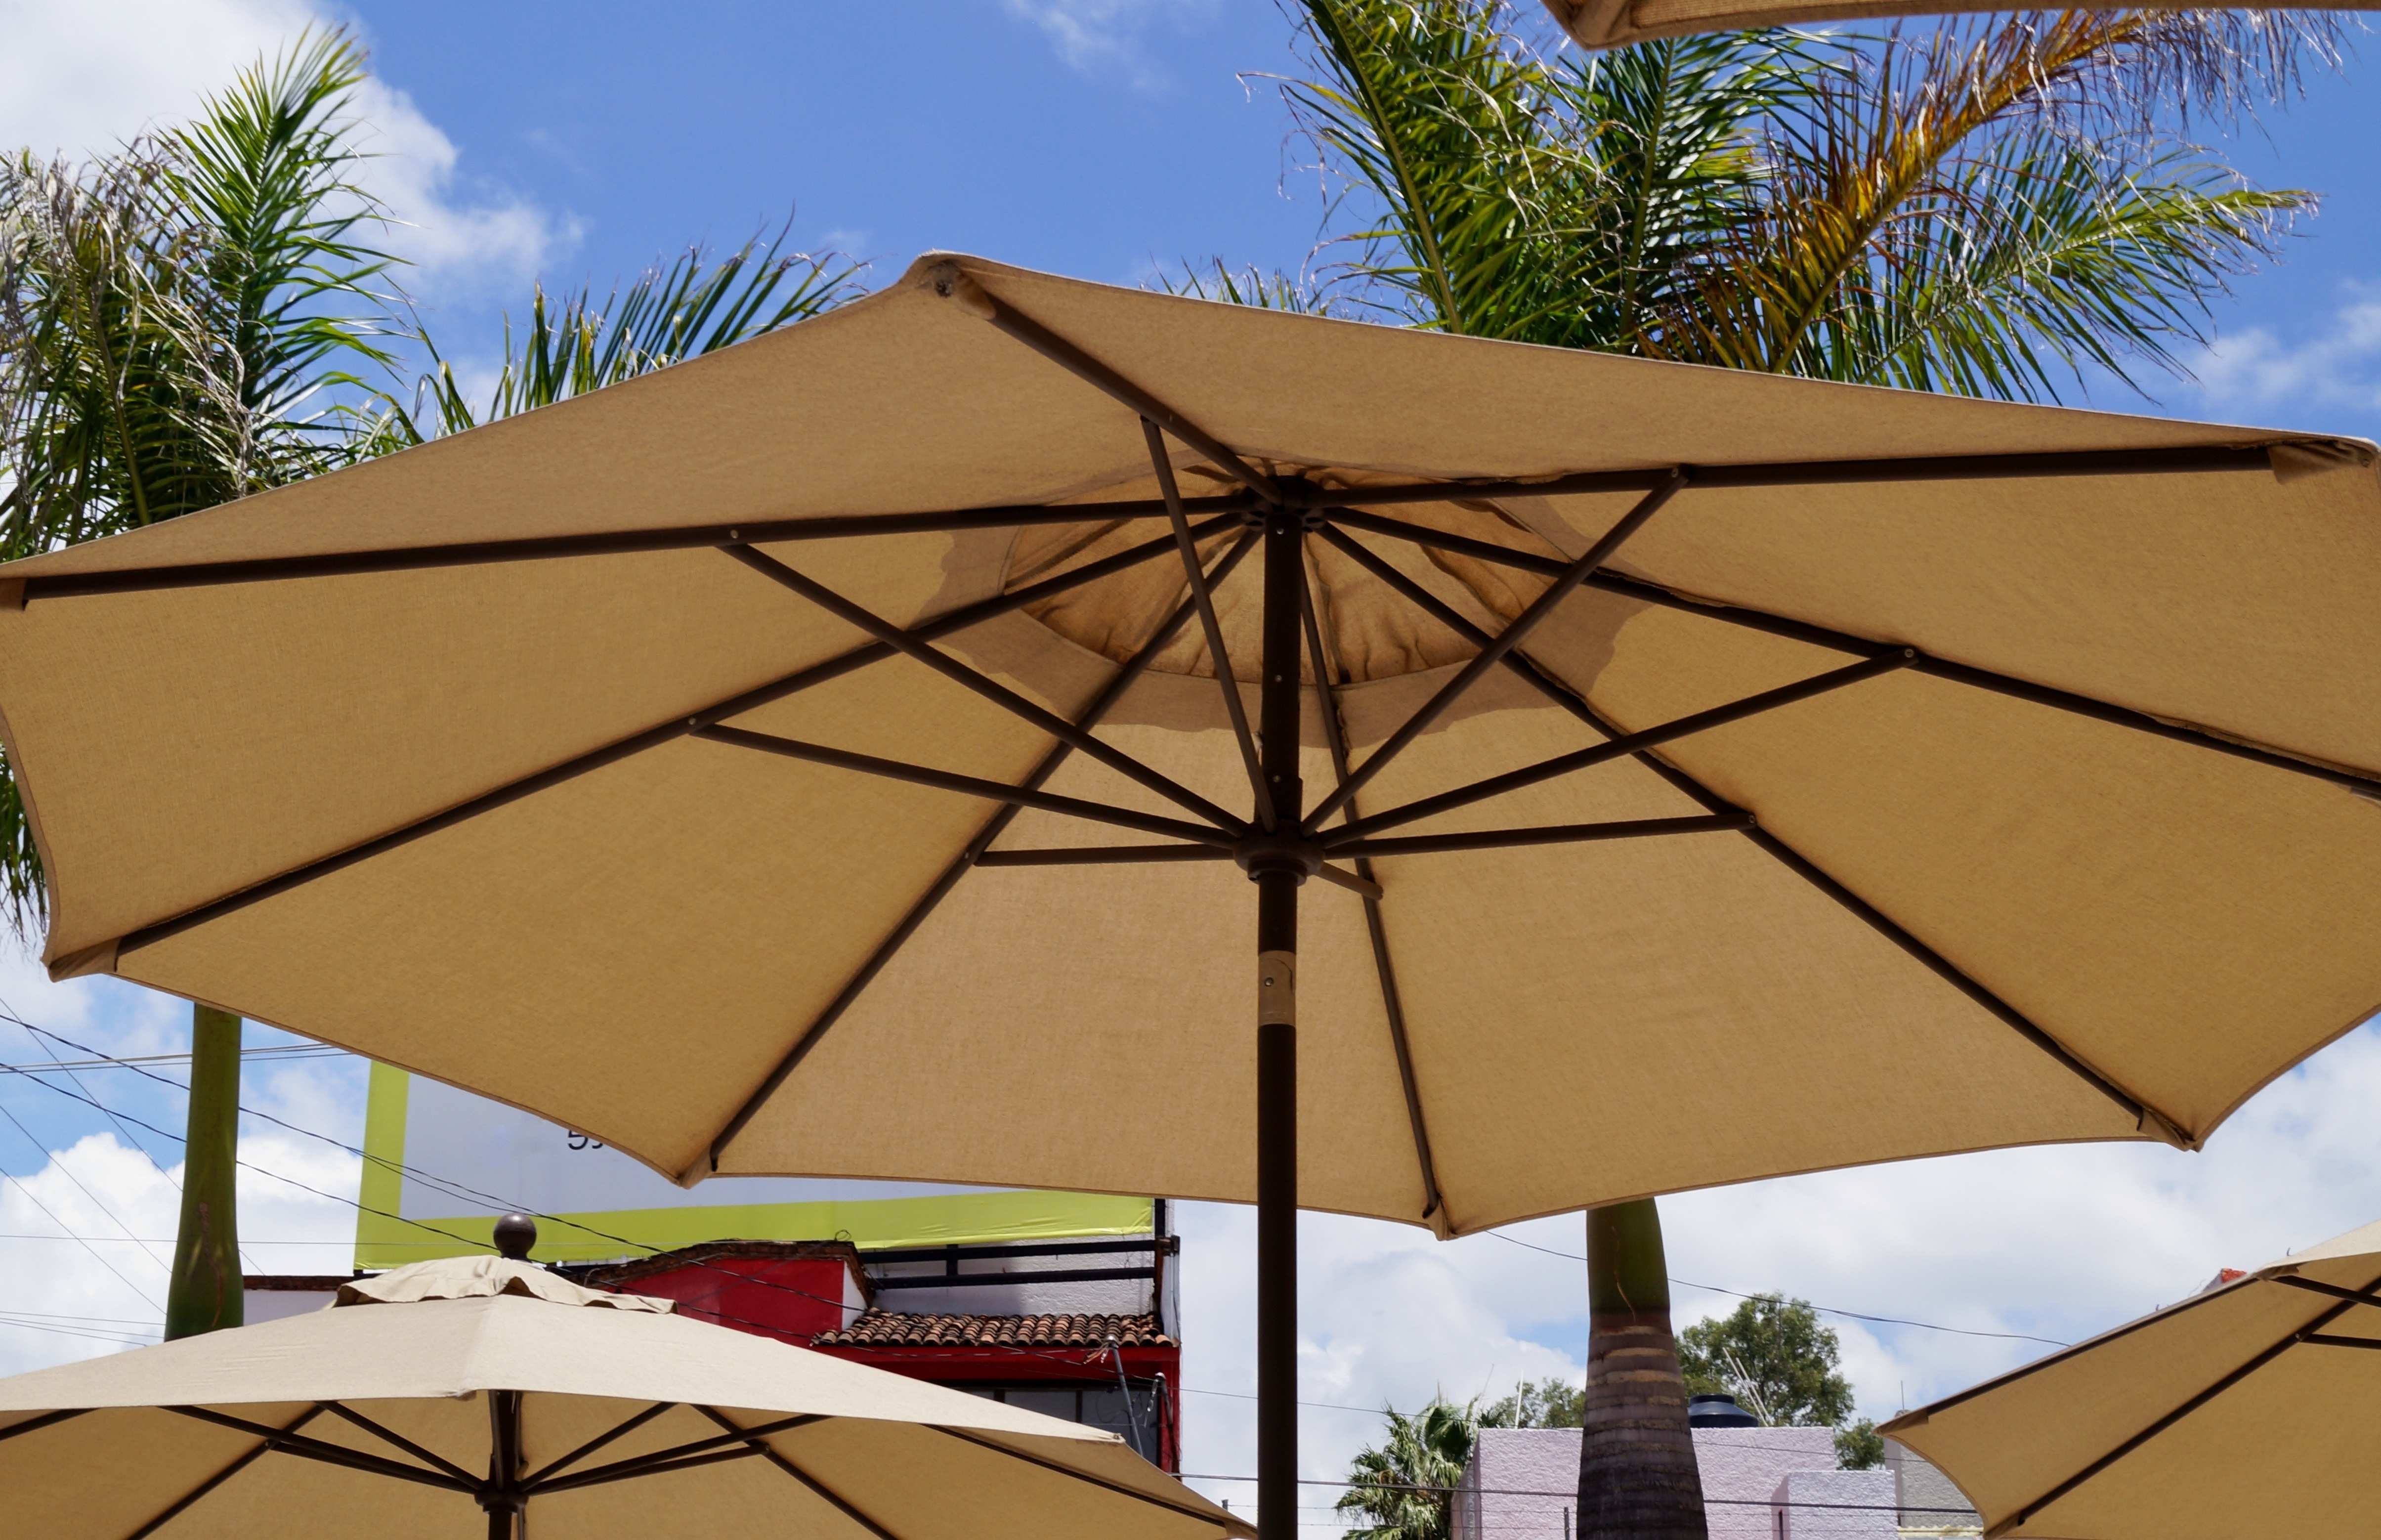 Commercial Outdoor Umbrellas Elegant Best For High Wind Areas This Within Most Popular Patio Umbrellas For High Wind Areas (View 6 of 20)